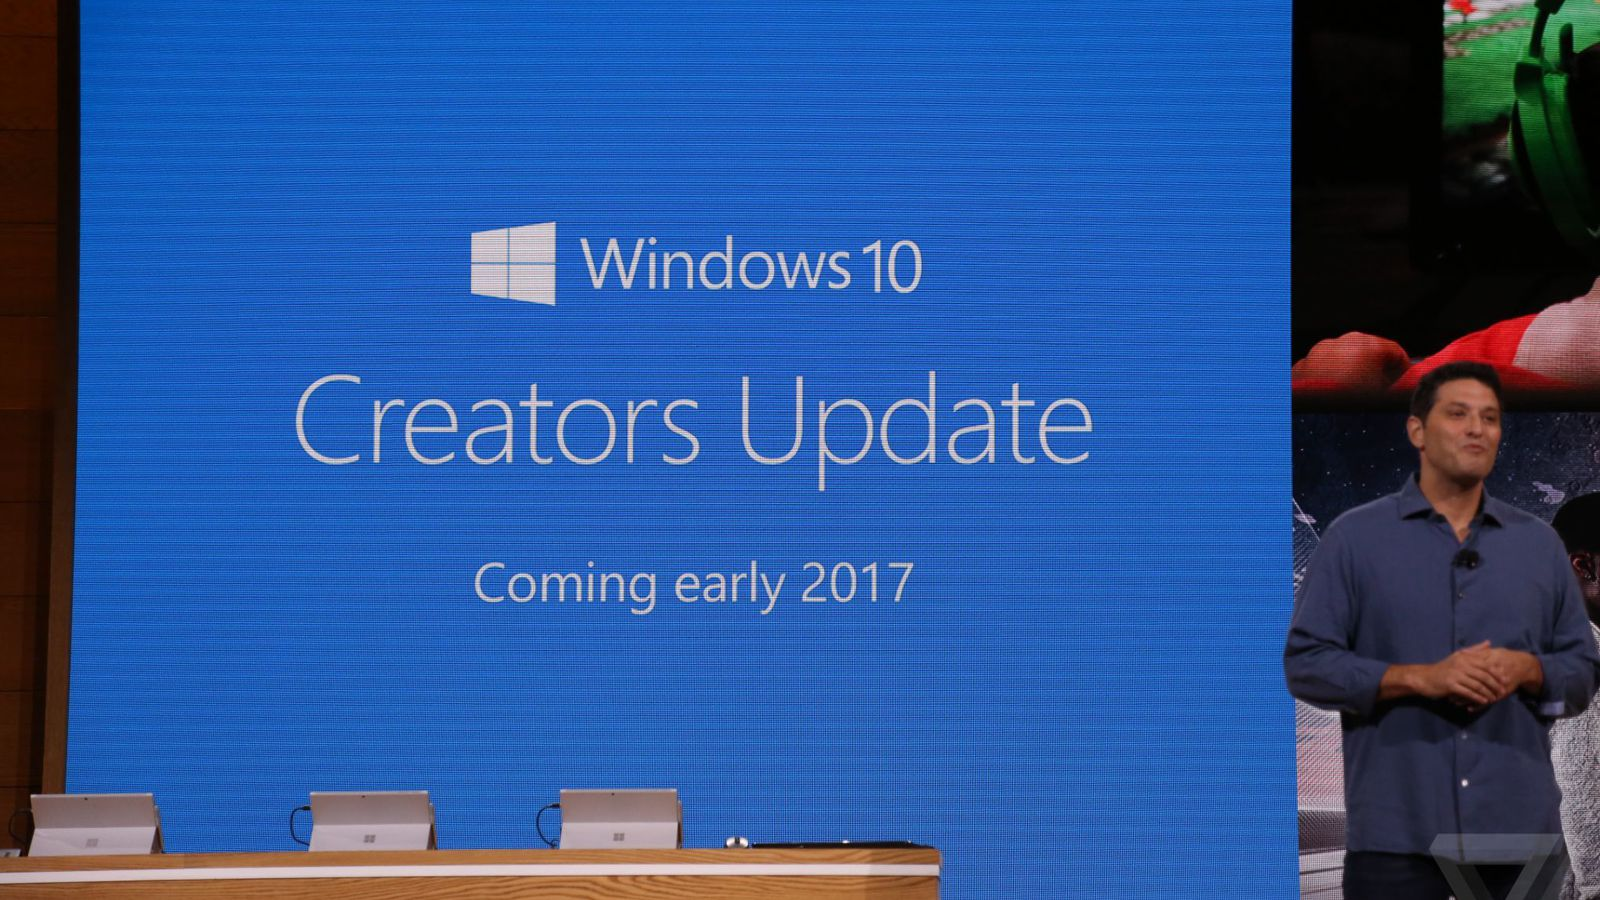 Windows 10 Creators Update expected to arrive in April